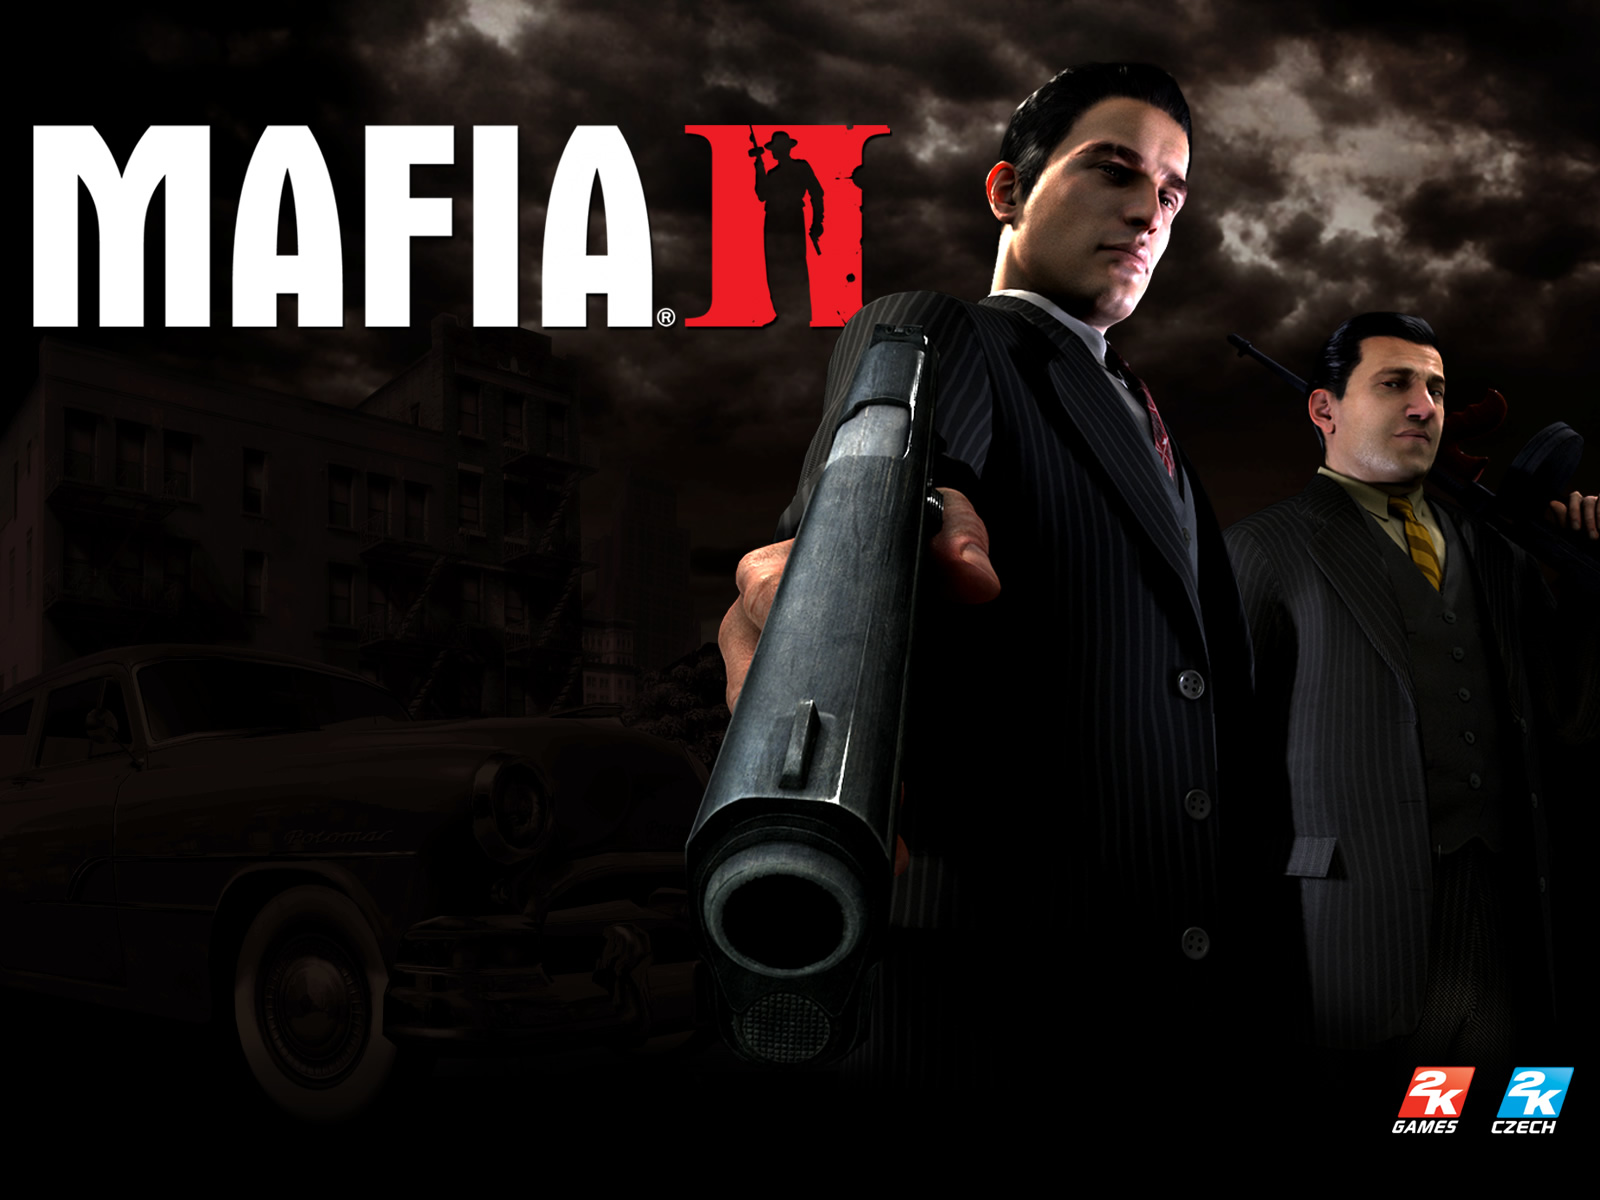 Mafia 2+Portal 2+Disney Un  | Xbox 360 | Shared account